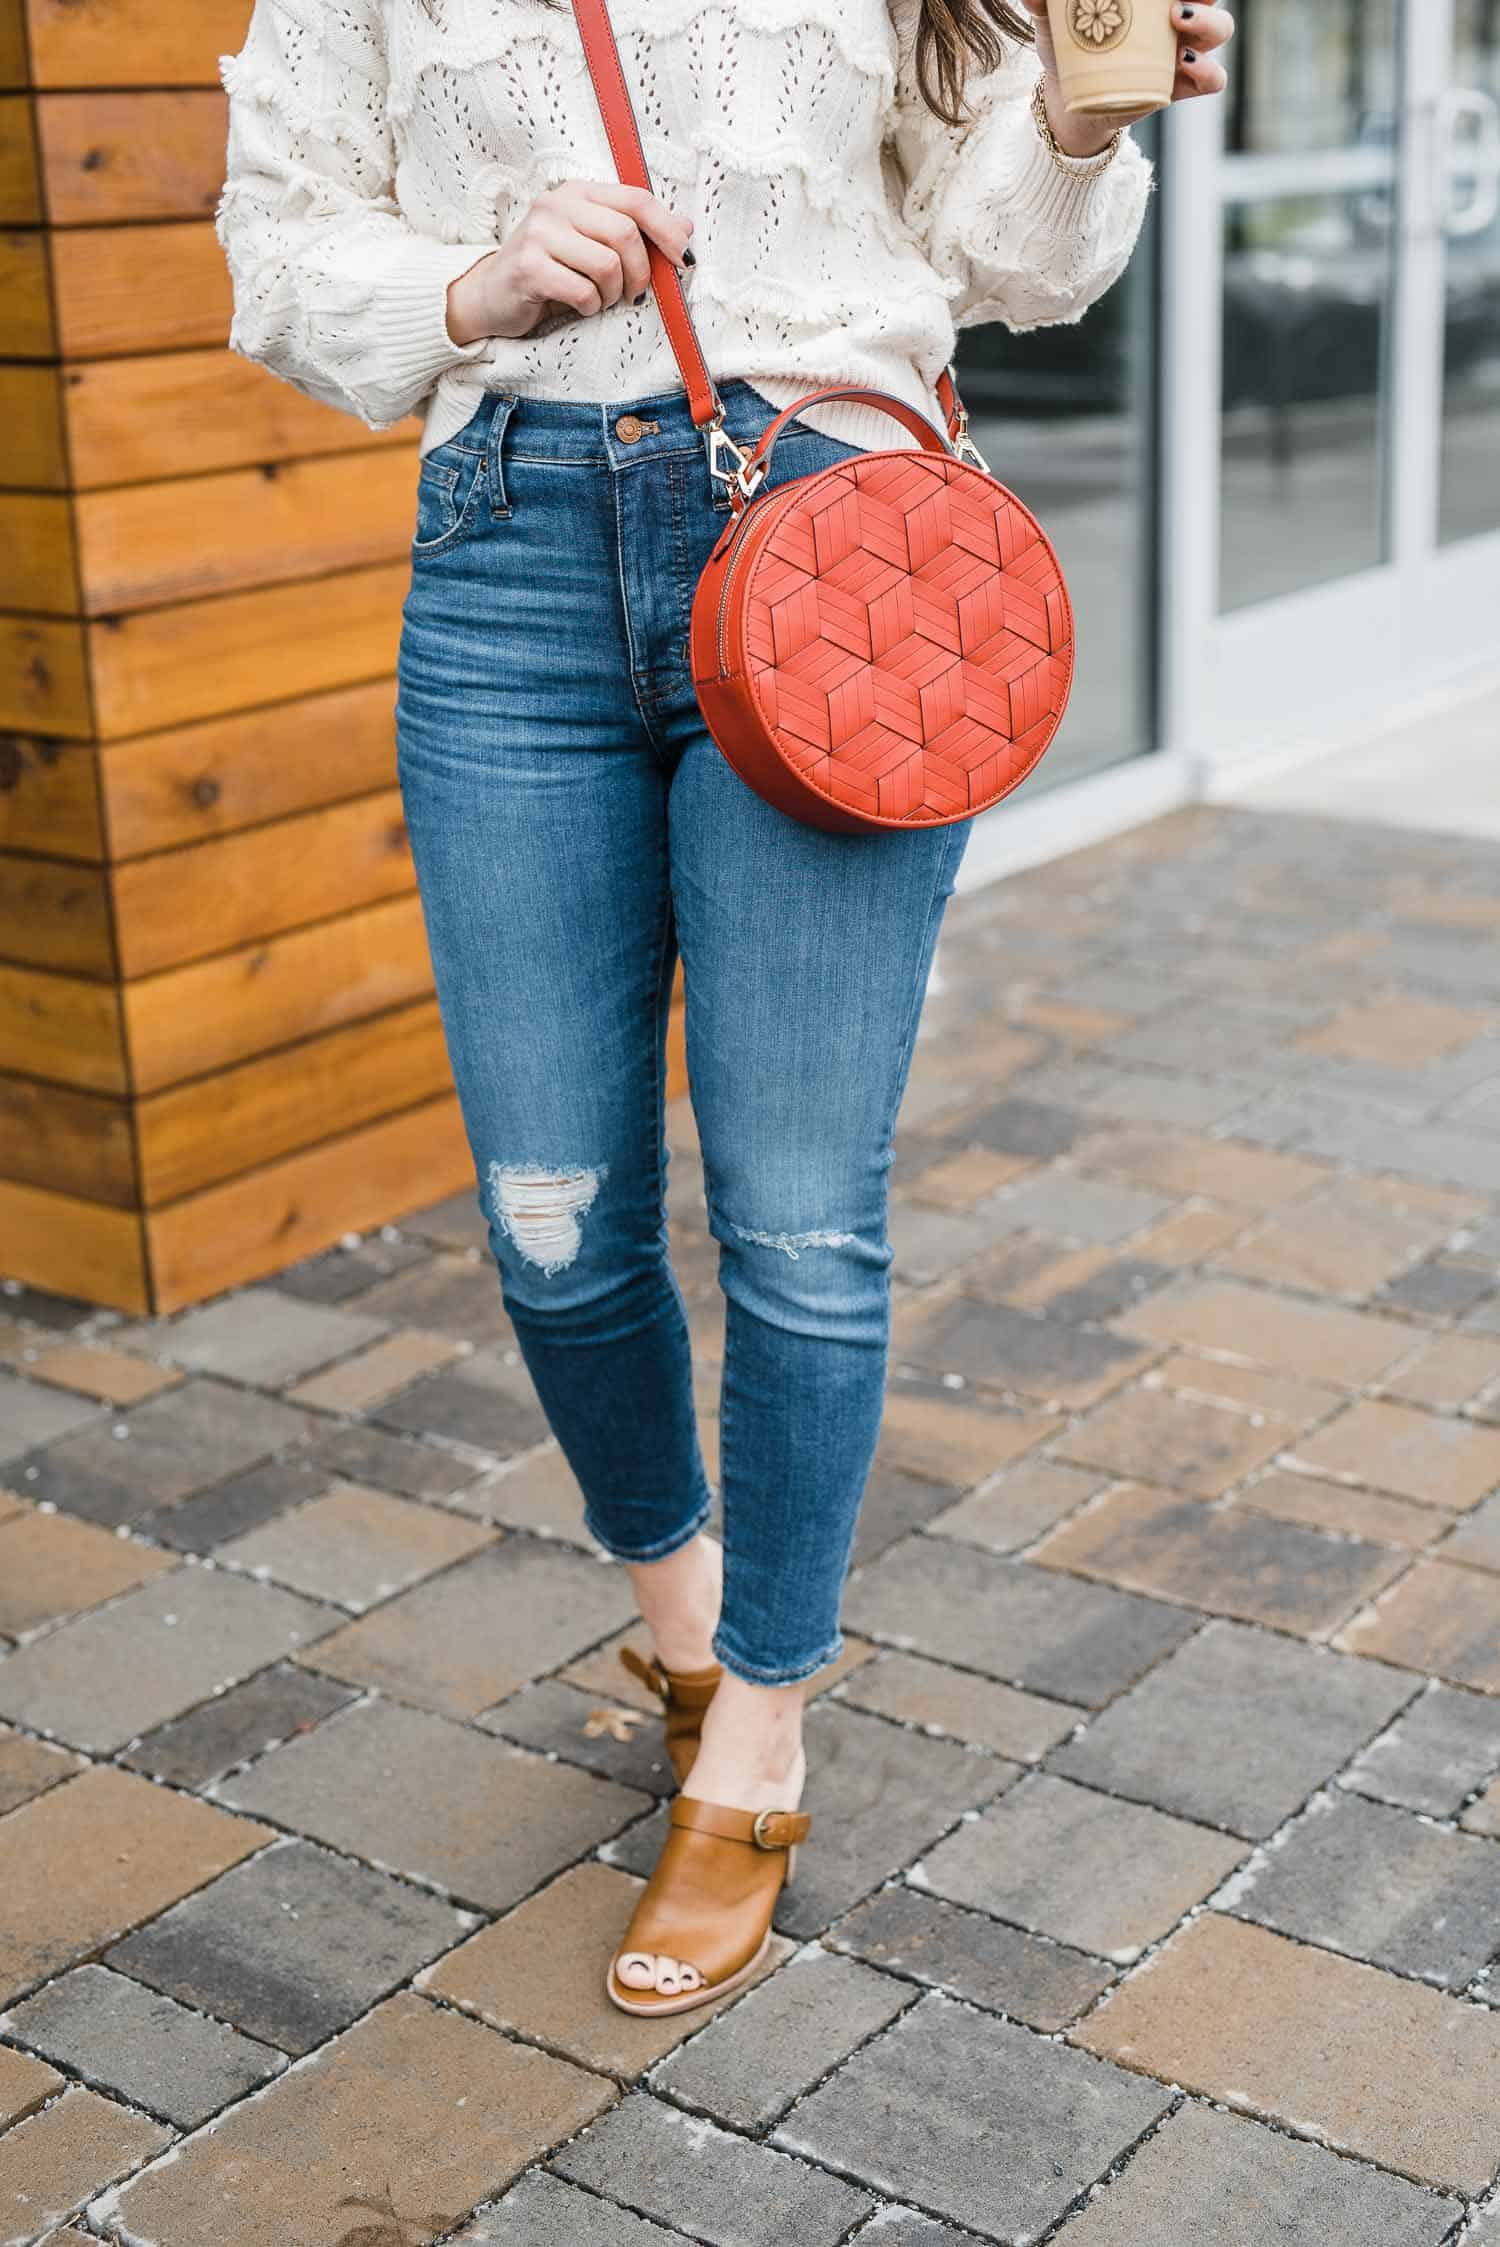 Jessica Camerata is featuring a welden red leather circle bag